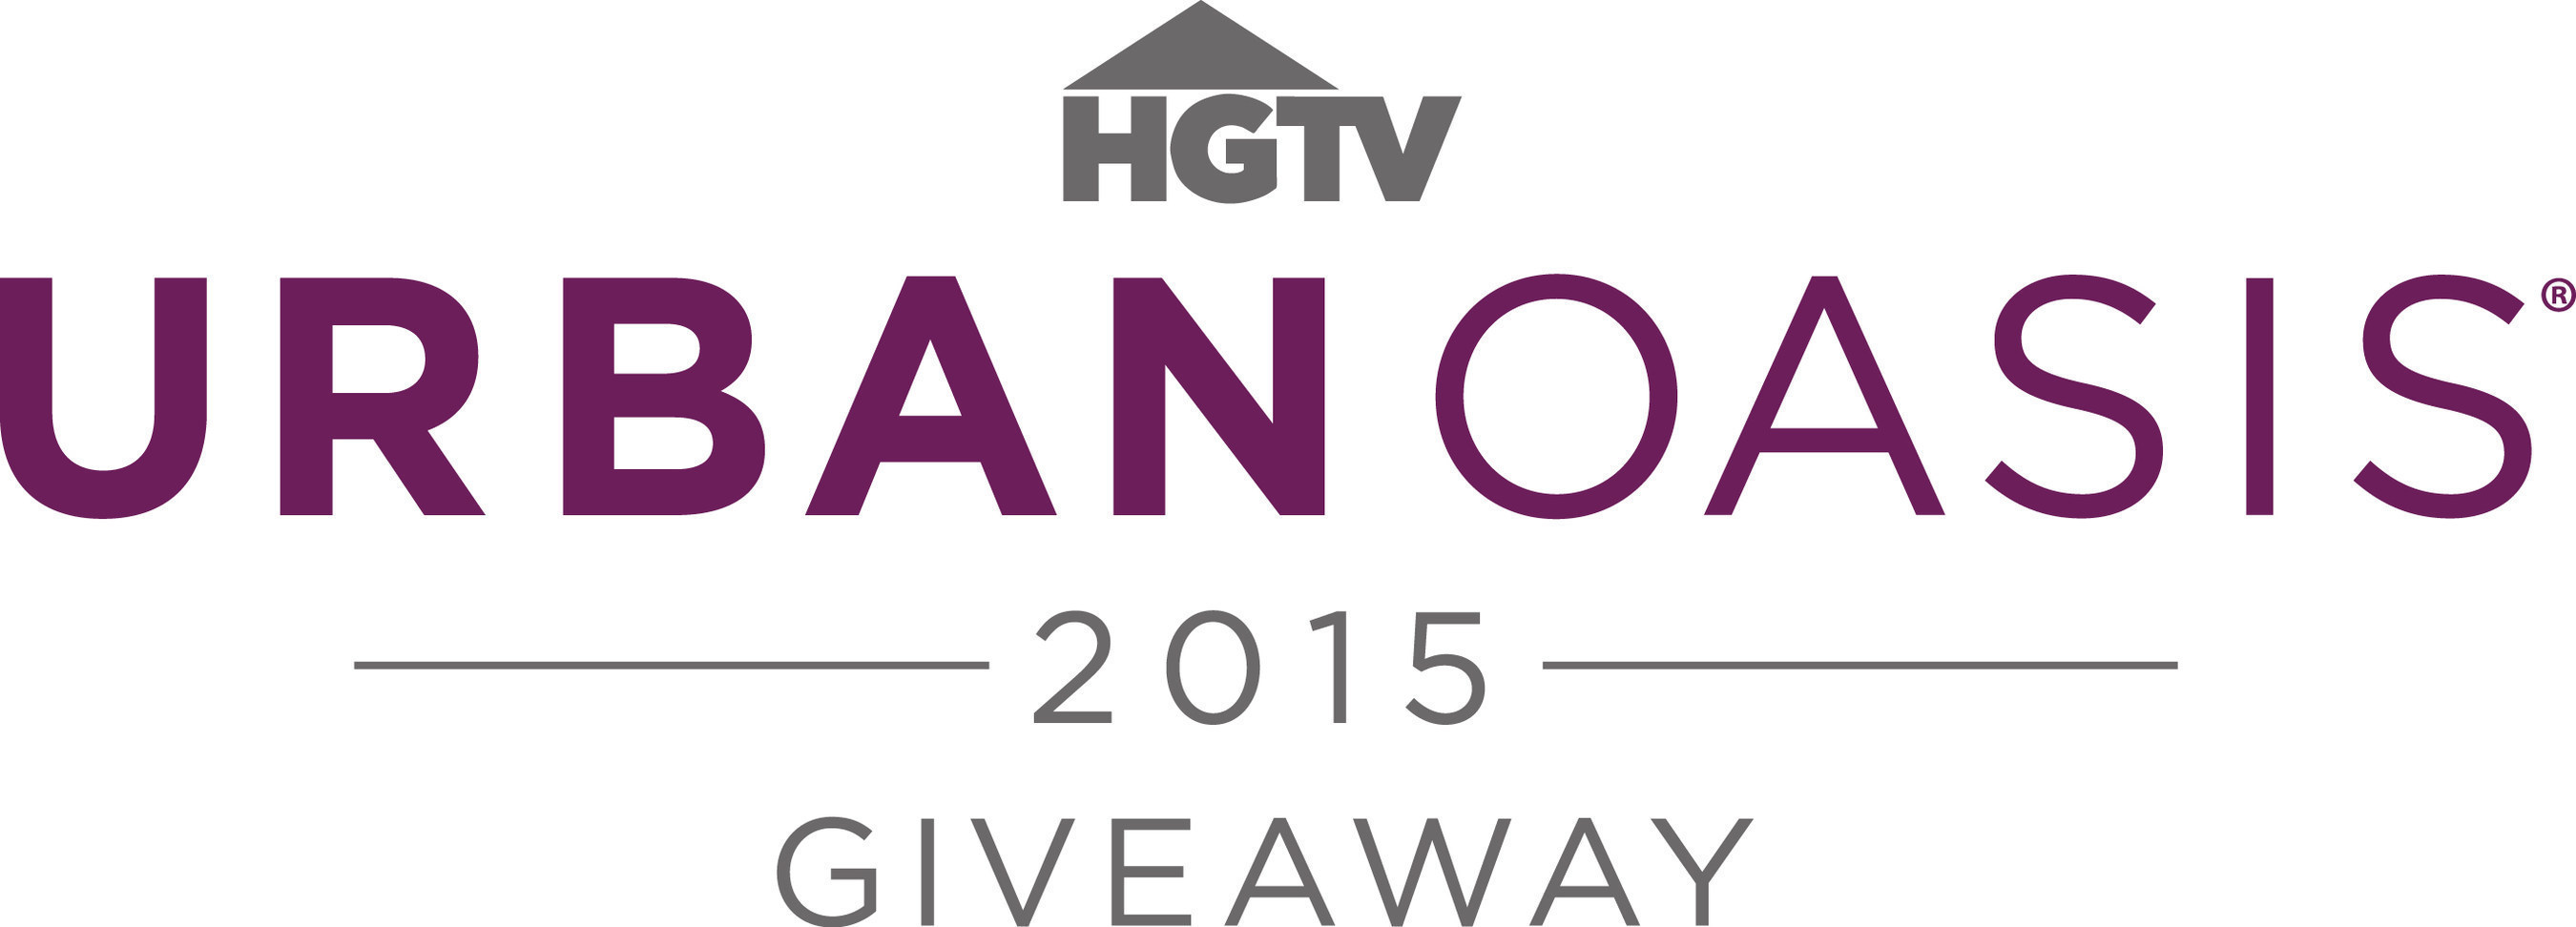 Only One Week Remains To Enter To Win Hgtv Urban Oasis 2015 Giveaway